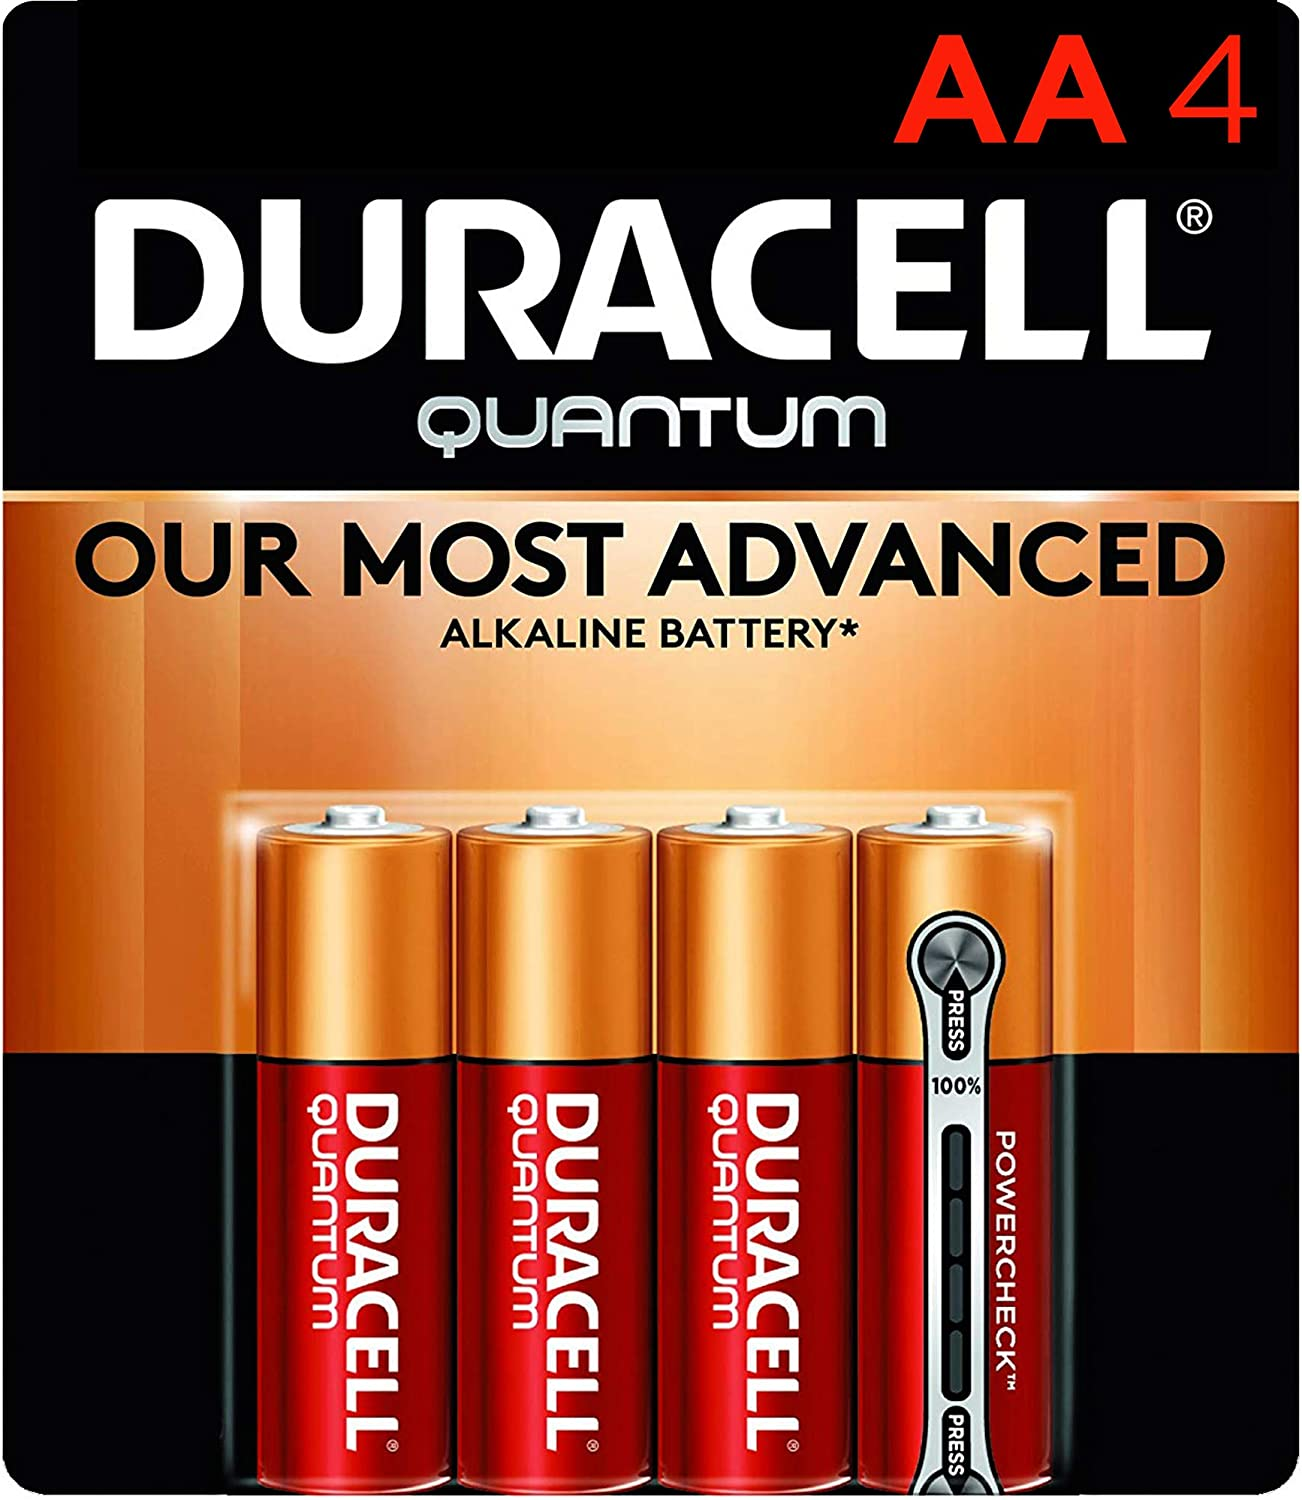 Duracell Quantum AA Alkaline Batteries - Long Lasting, All-Purpose Double A battery for Household and Business - 4 count: Health & Personal Care